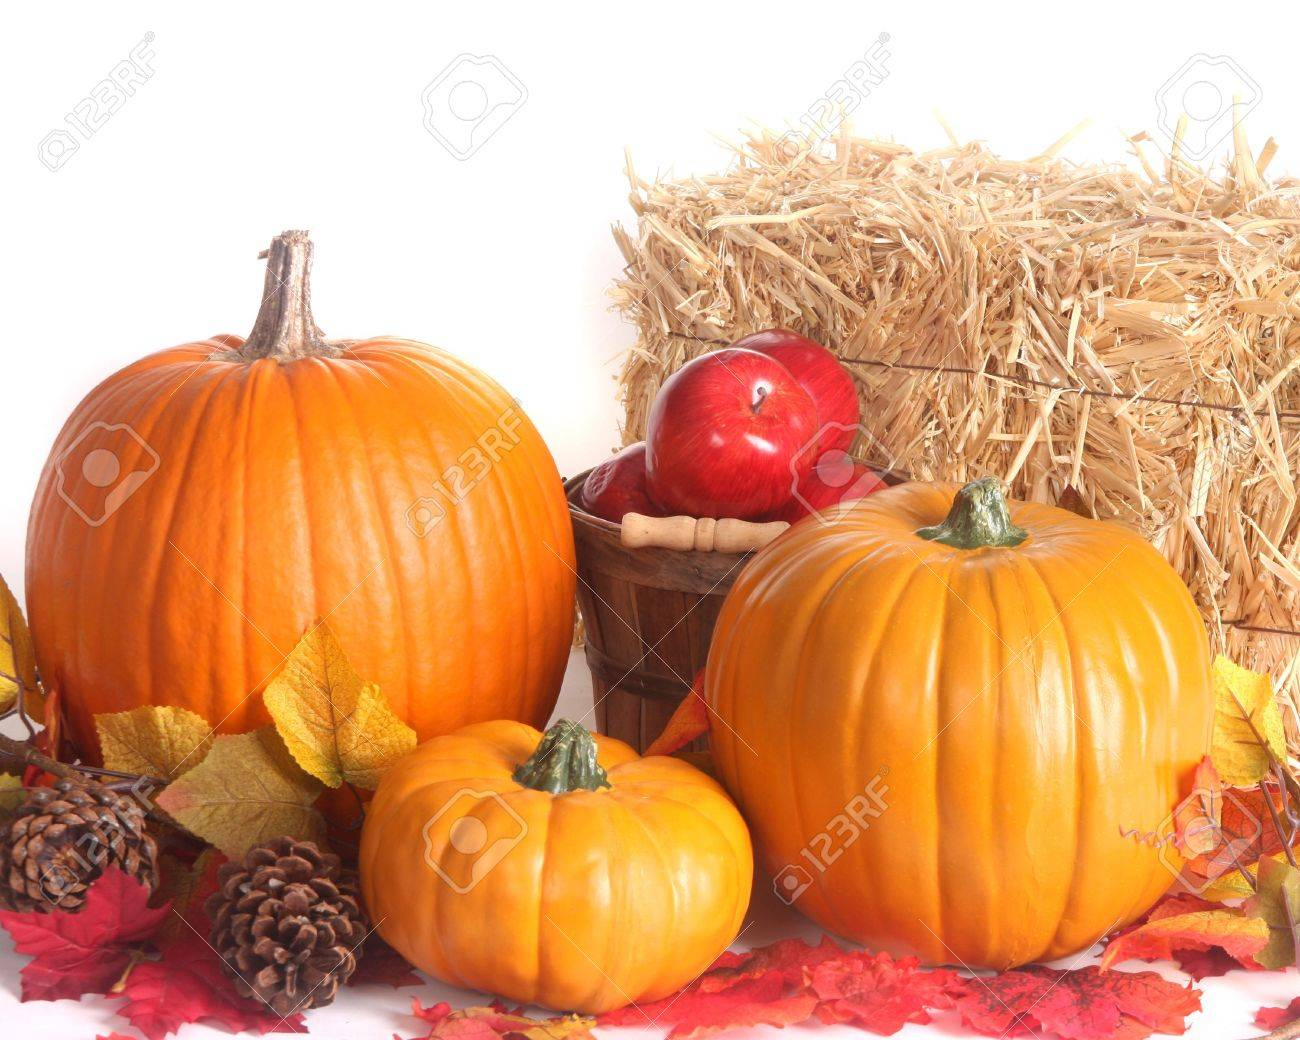 fall harvest scene with pumpkins apples and colored leaves stock